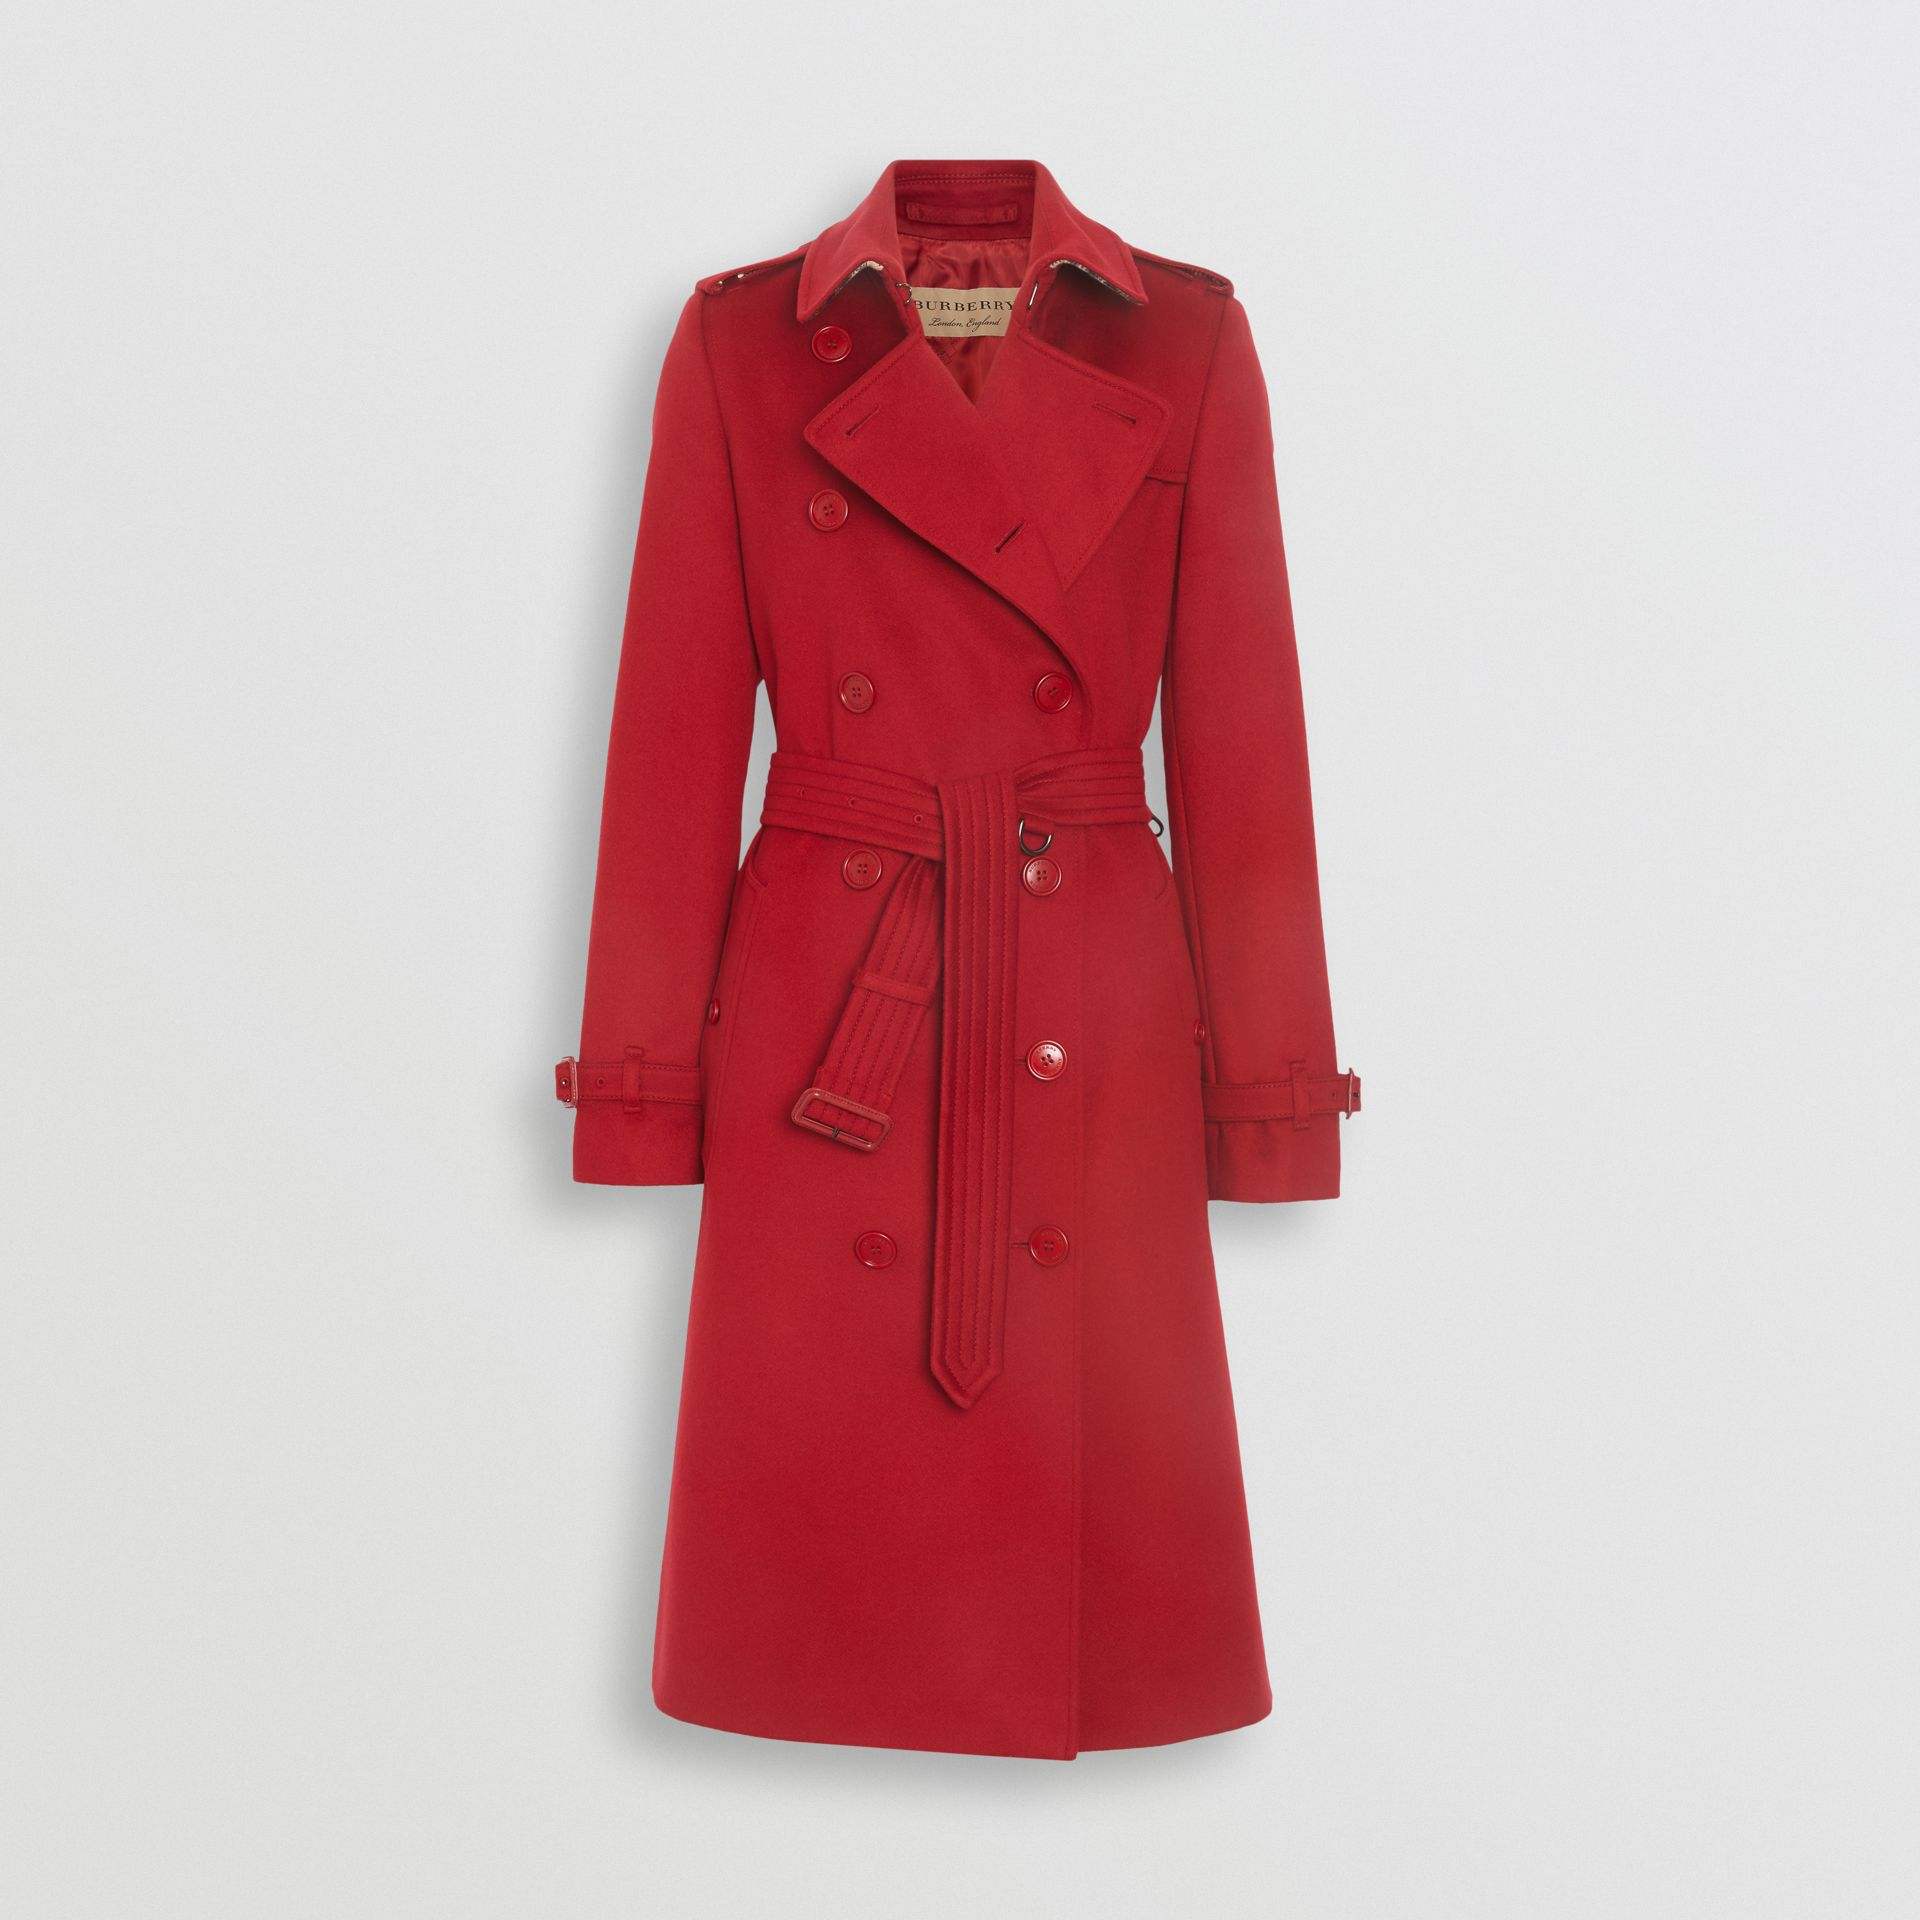 Cashmere Trench Coat in Red - Women | Burberry - gallery image 3